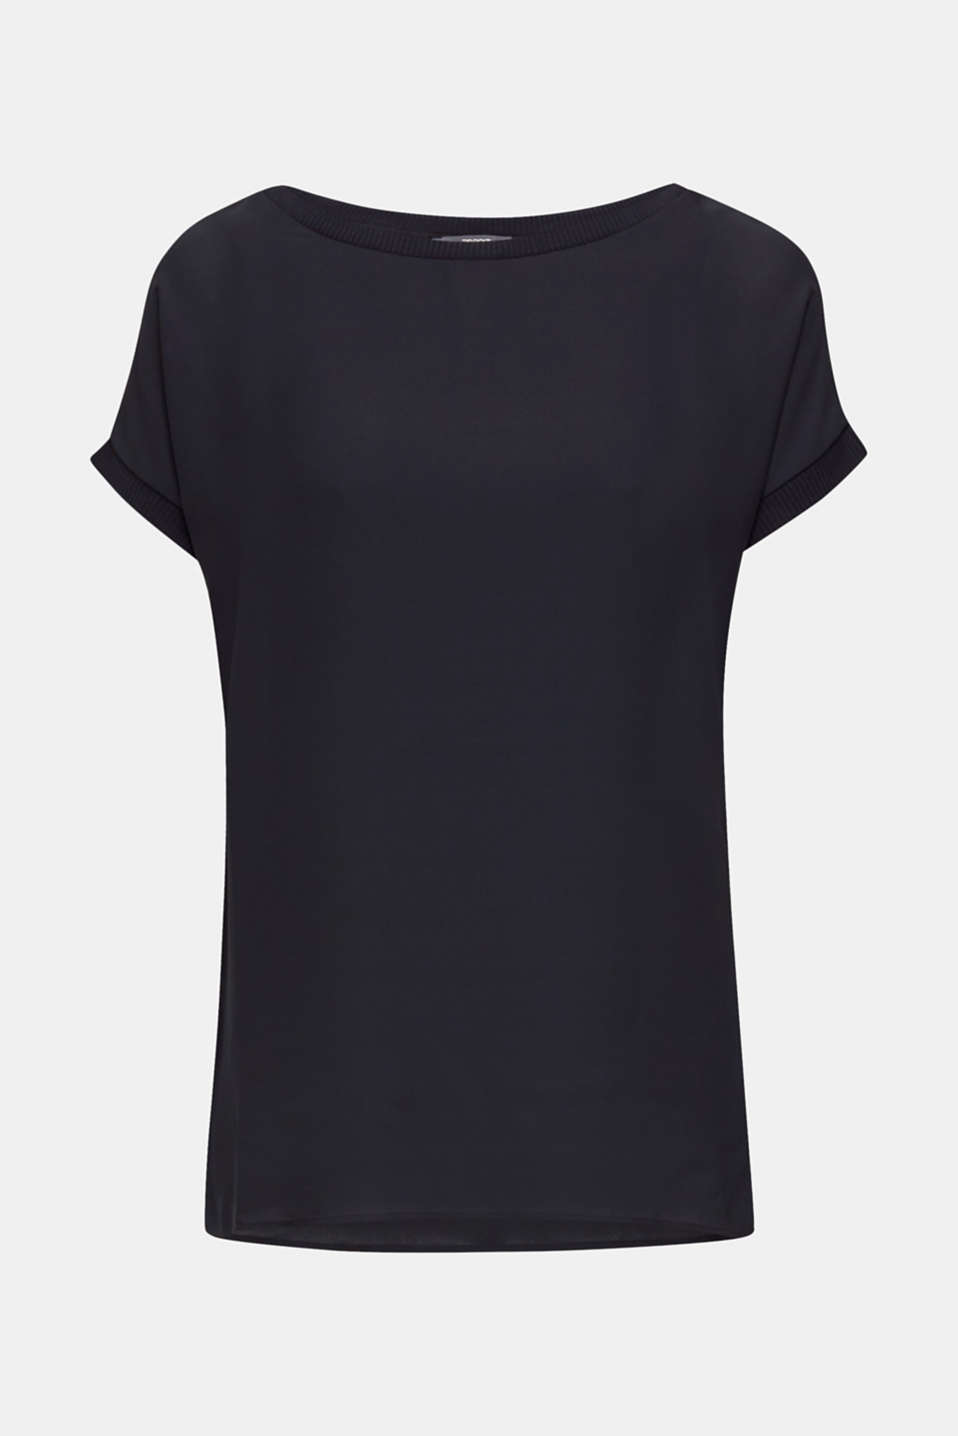 Long T-shirt made of jersey/chiffon, BLACK, detail image number 7